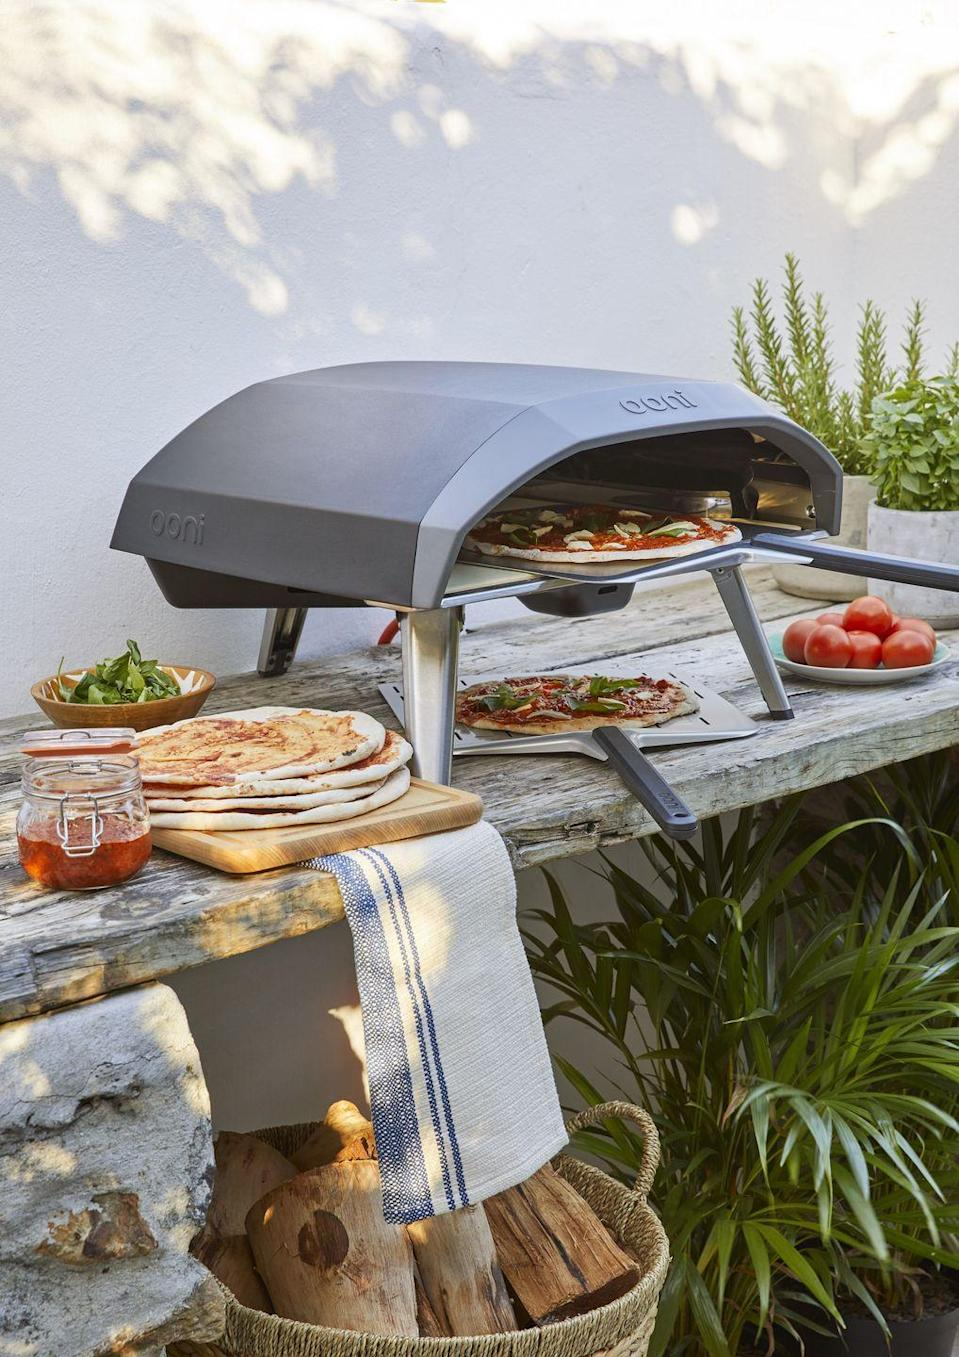 """<p>Get set for a summer barbecue with John Lewis' must-have range of dining essentials. From pizza ovens to serving platters, you'll find everything you need for a summertime feast.</p><p><a class=""""link rapid-noclick-resp"""" href=""""https://go.redirectingat.com?id=127X1599956&url=https%3A%2F%2Fwww.johnlewis.com%2Fbrowse%2Fhome-garden%2Fbbqs-outdoor-heating%2Fbbqs%2F_%2FN-5upb&sref=https%3A%2F%2Fwww.redonline.co.uk%2Finteriors%2Fhomeware%2Fg36003381%2Fjohn-lewis-garden-collection-spring-summer%2F"""" rel=""""nofollow noopener"""" target=""""_blank"""" data-ylk=""""slk:SHOP NOW"""">SHOP NOW</a></p>"""